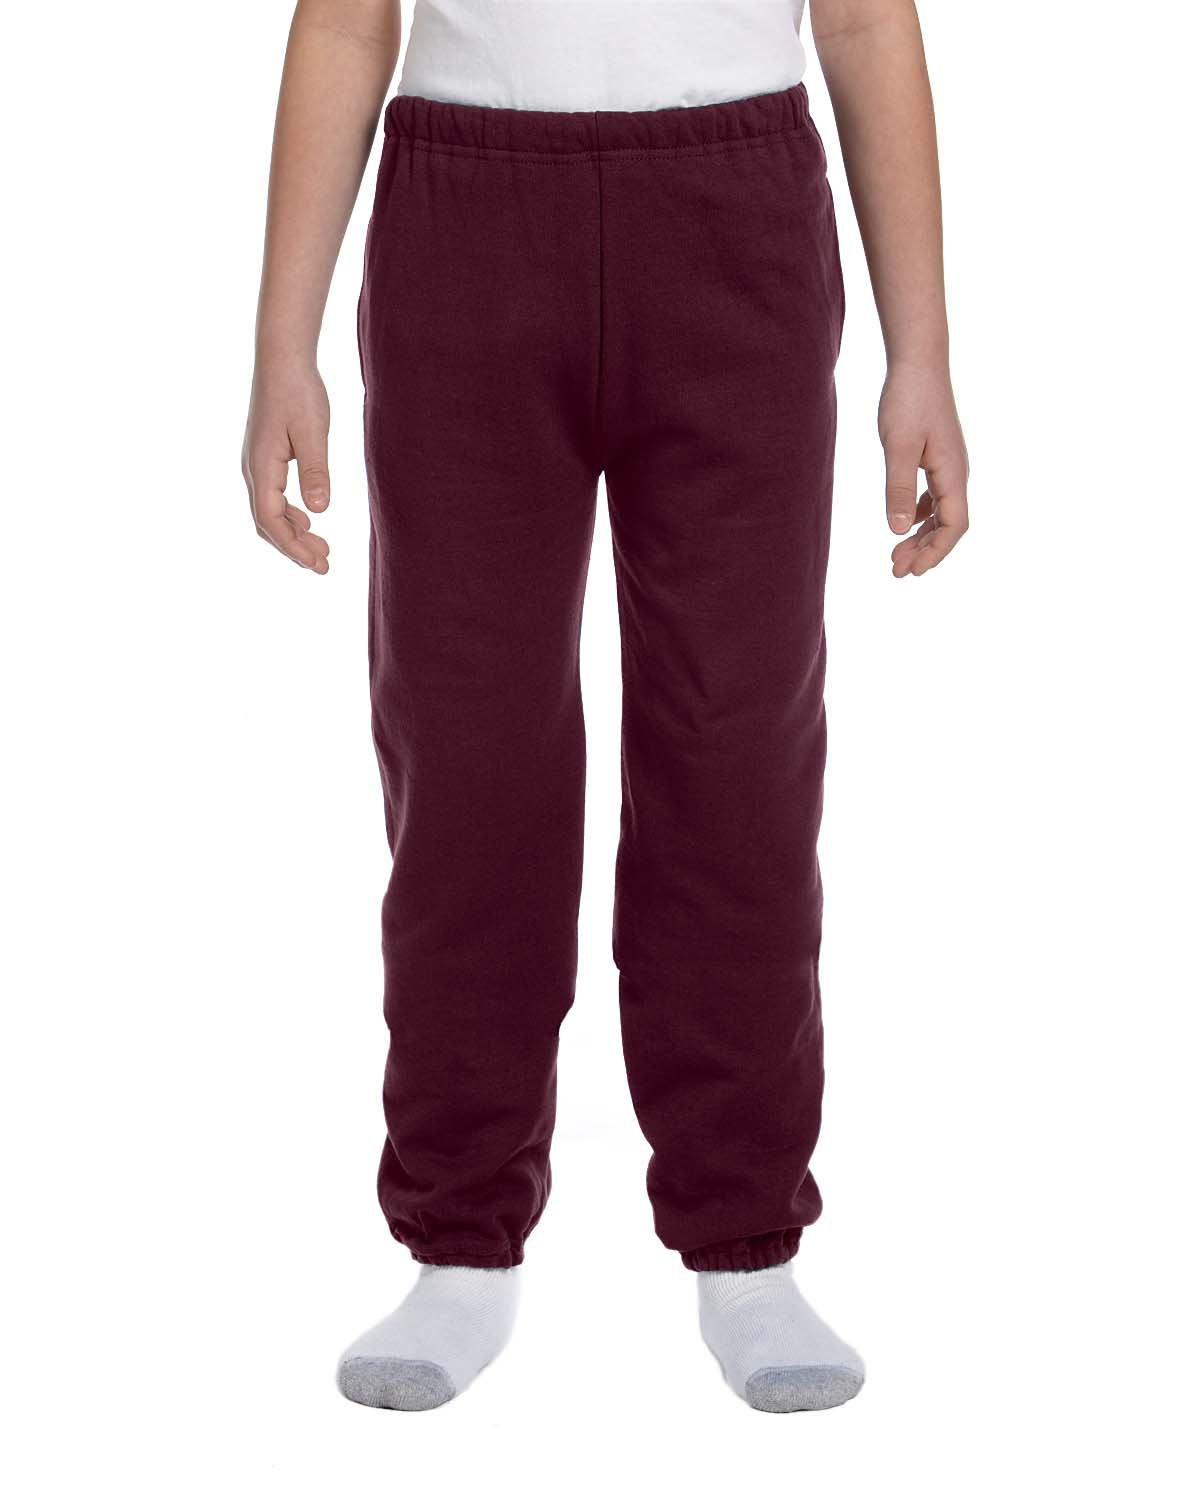 JERZEES 4950BP-Youth Sweatpant With Pockets